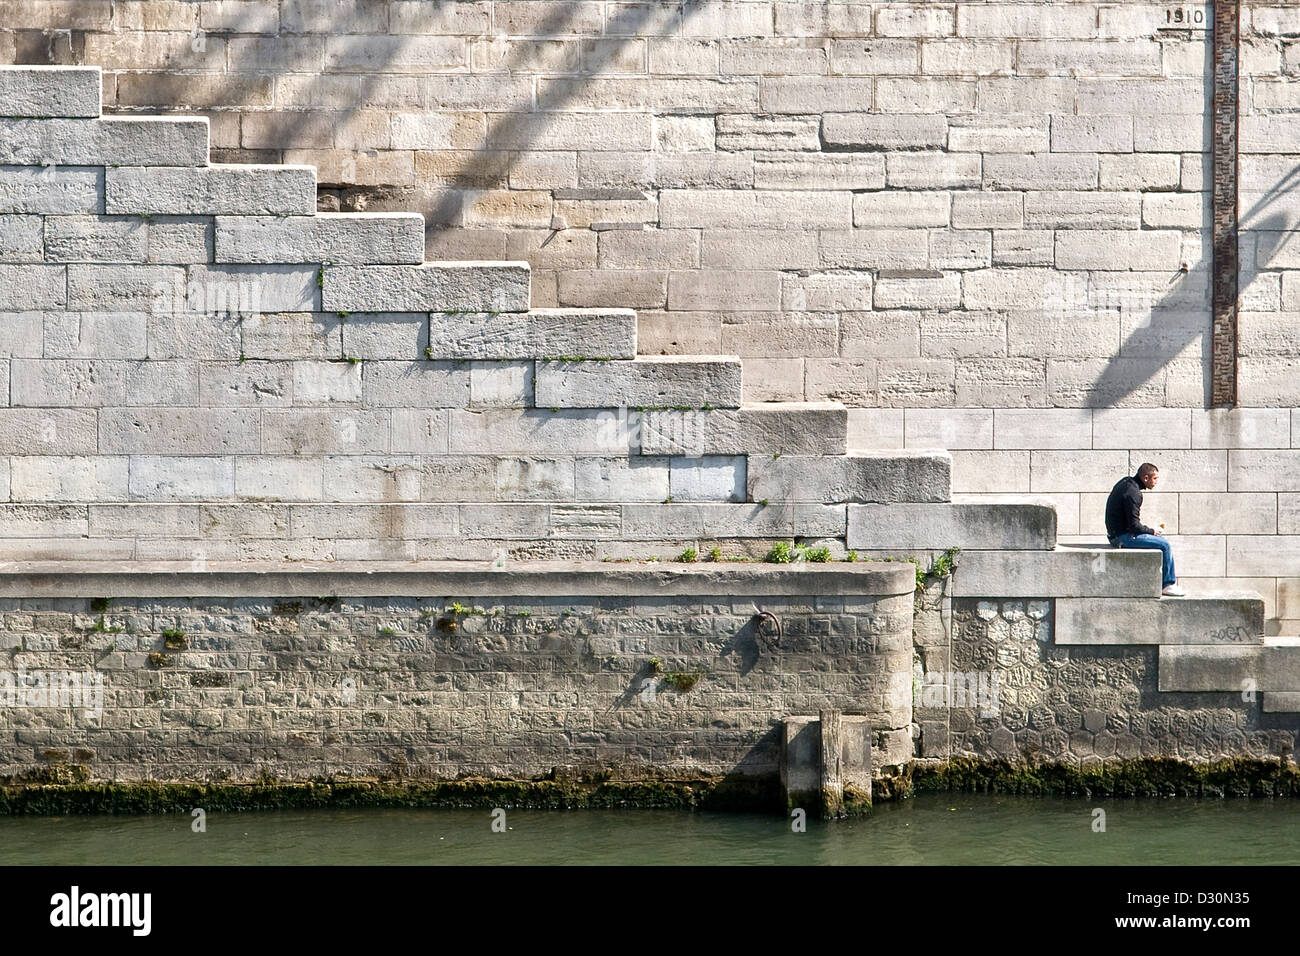 A man enjoys solitude along the River Seine, Paris, France. River height makers and the stone stairs provide bold - Stock Image